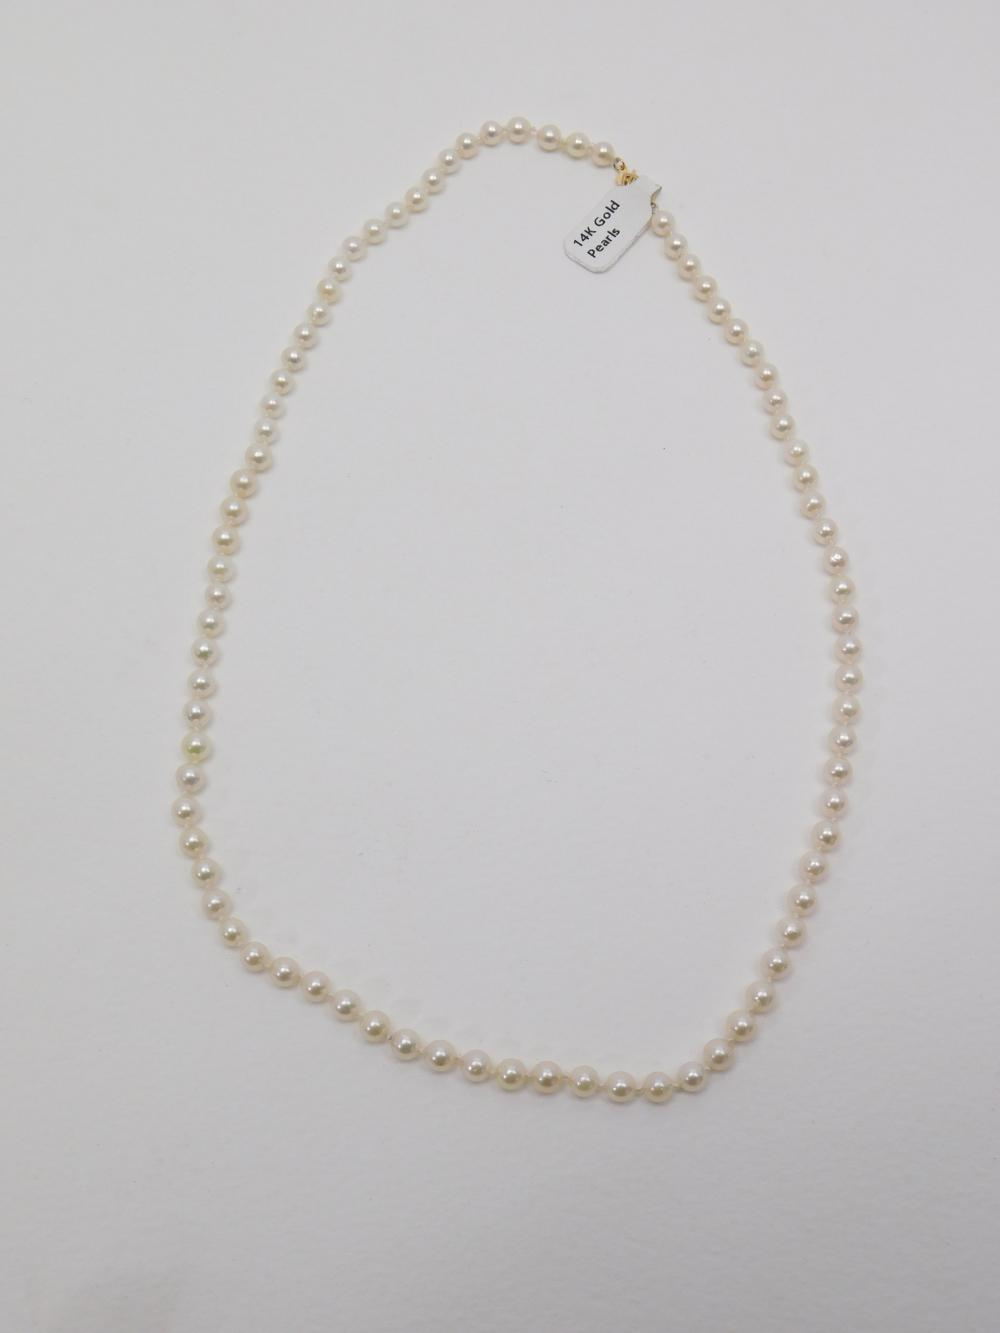 Vintage 14K Gold Clasp Pearl 20 Inch Necklace 17G